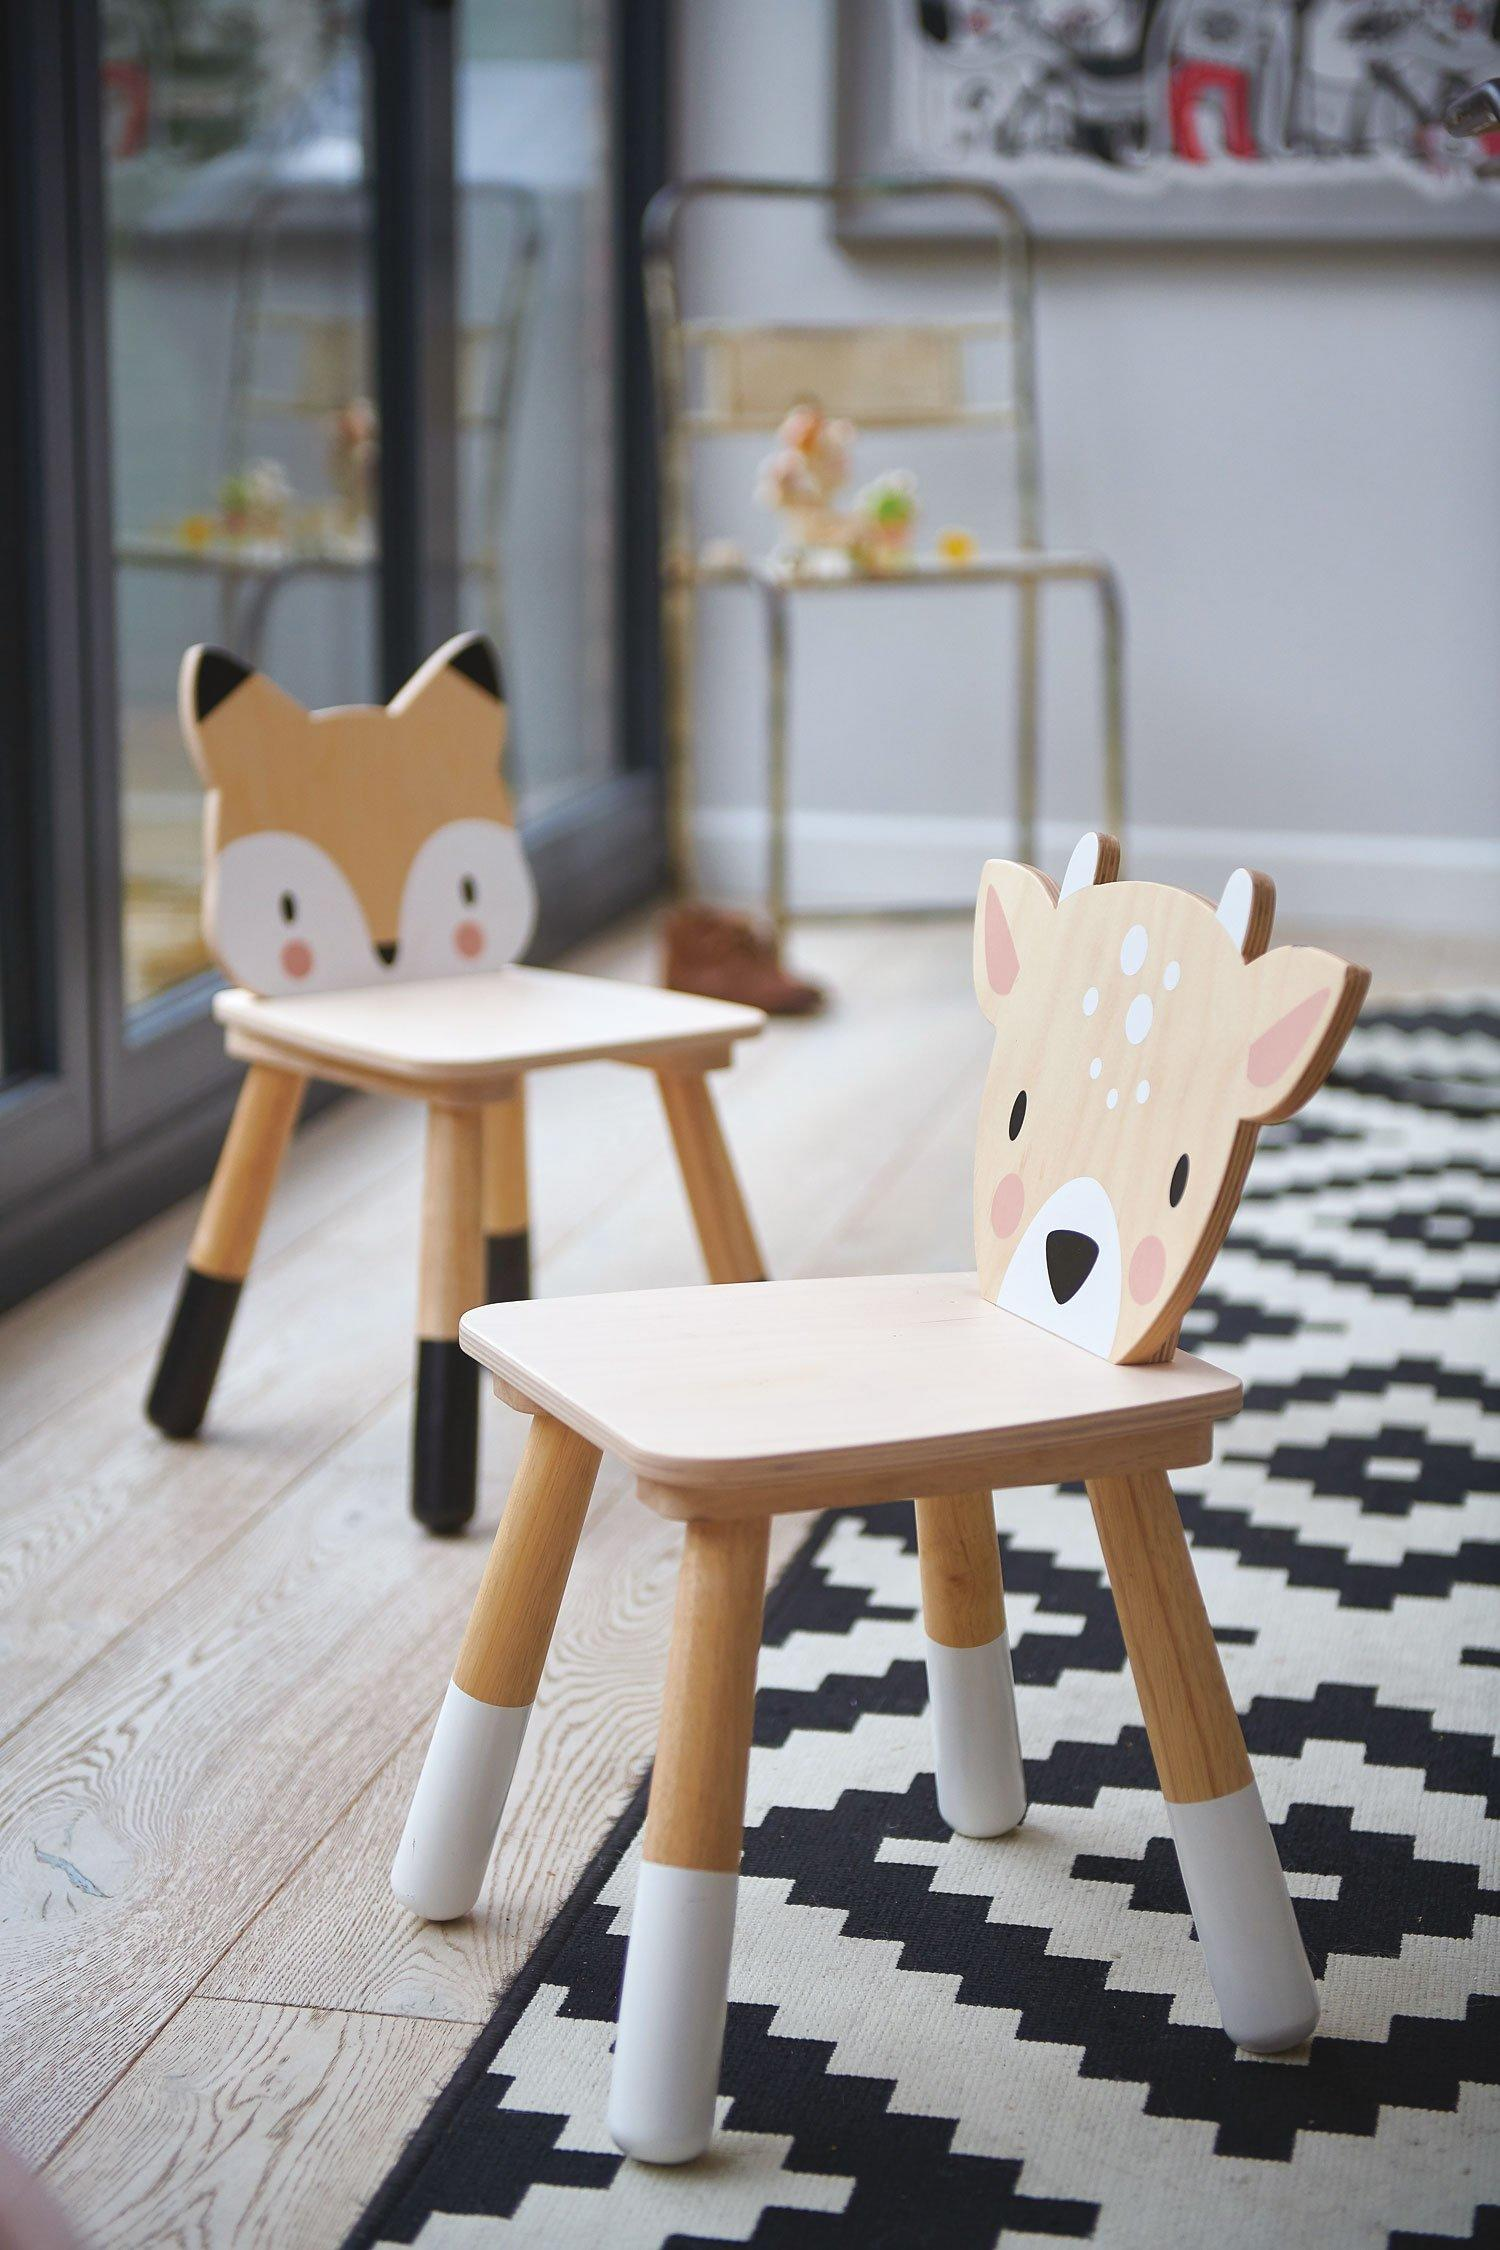 New Wooden Forest Fox Themed Children's Chair #1